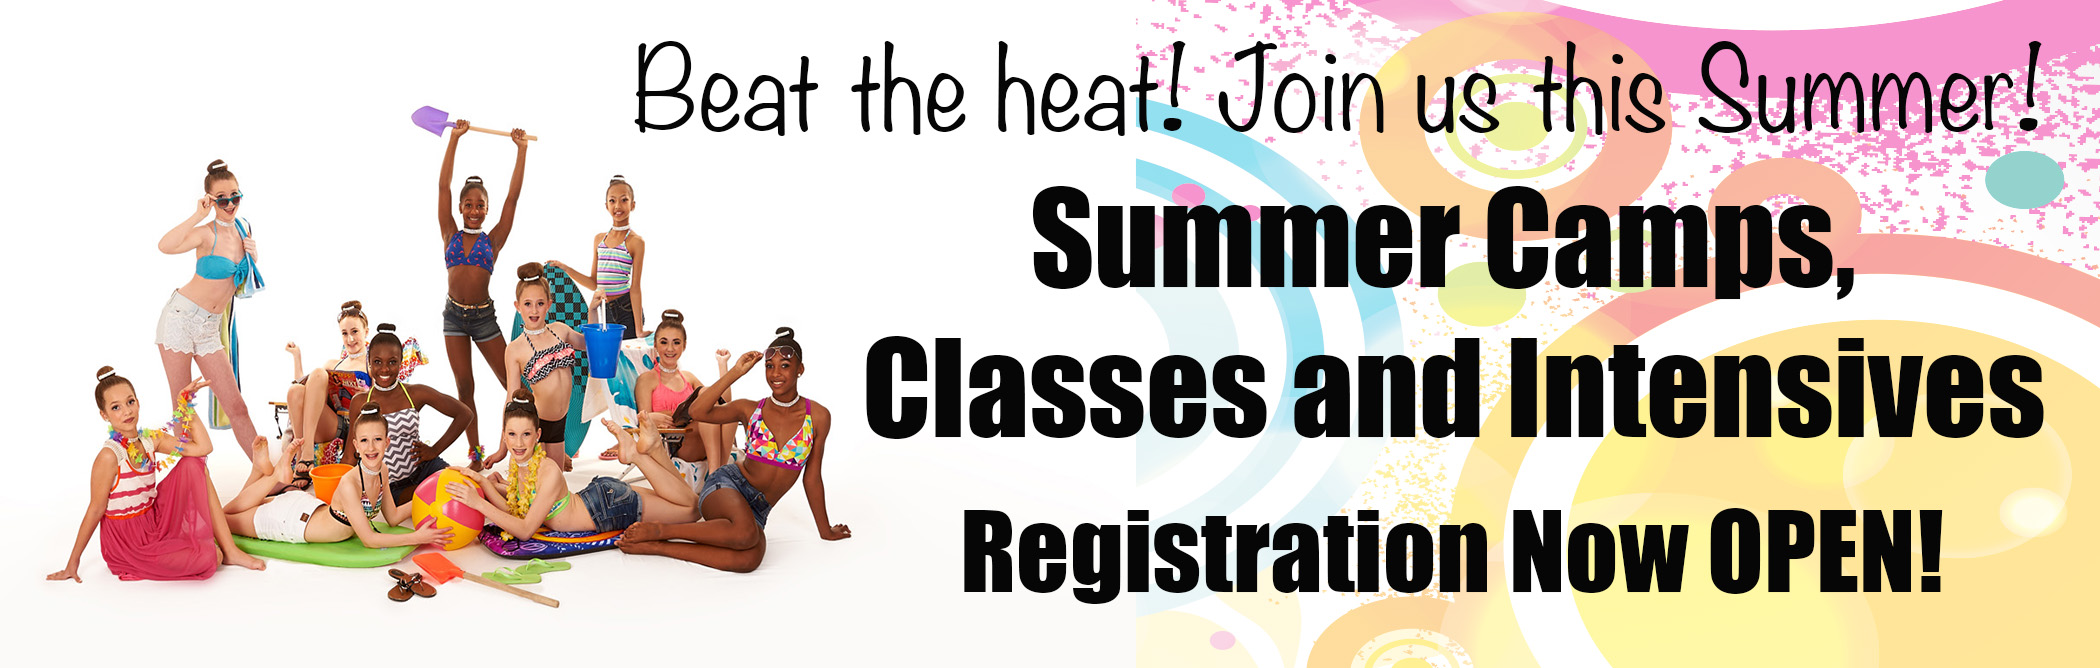 http://www2.carydance.com/wp-content/uploads/2015/04/summer-camps-and-classes.jpg